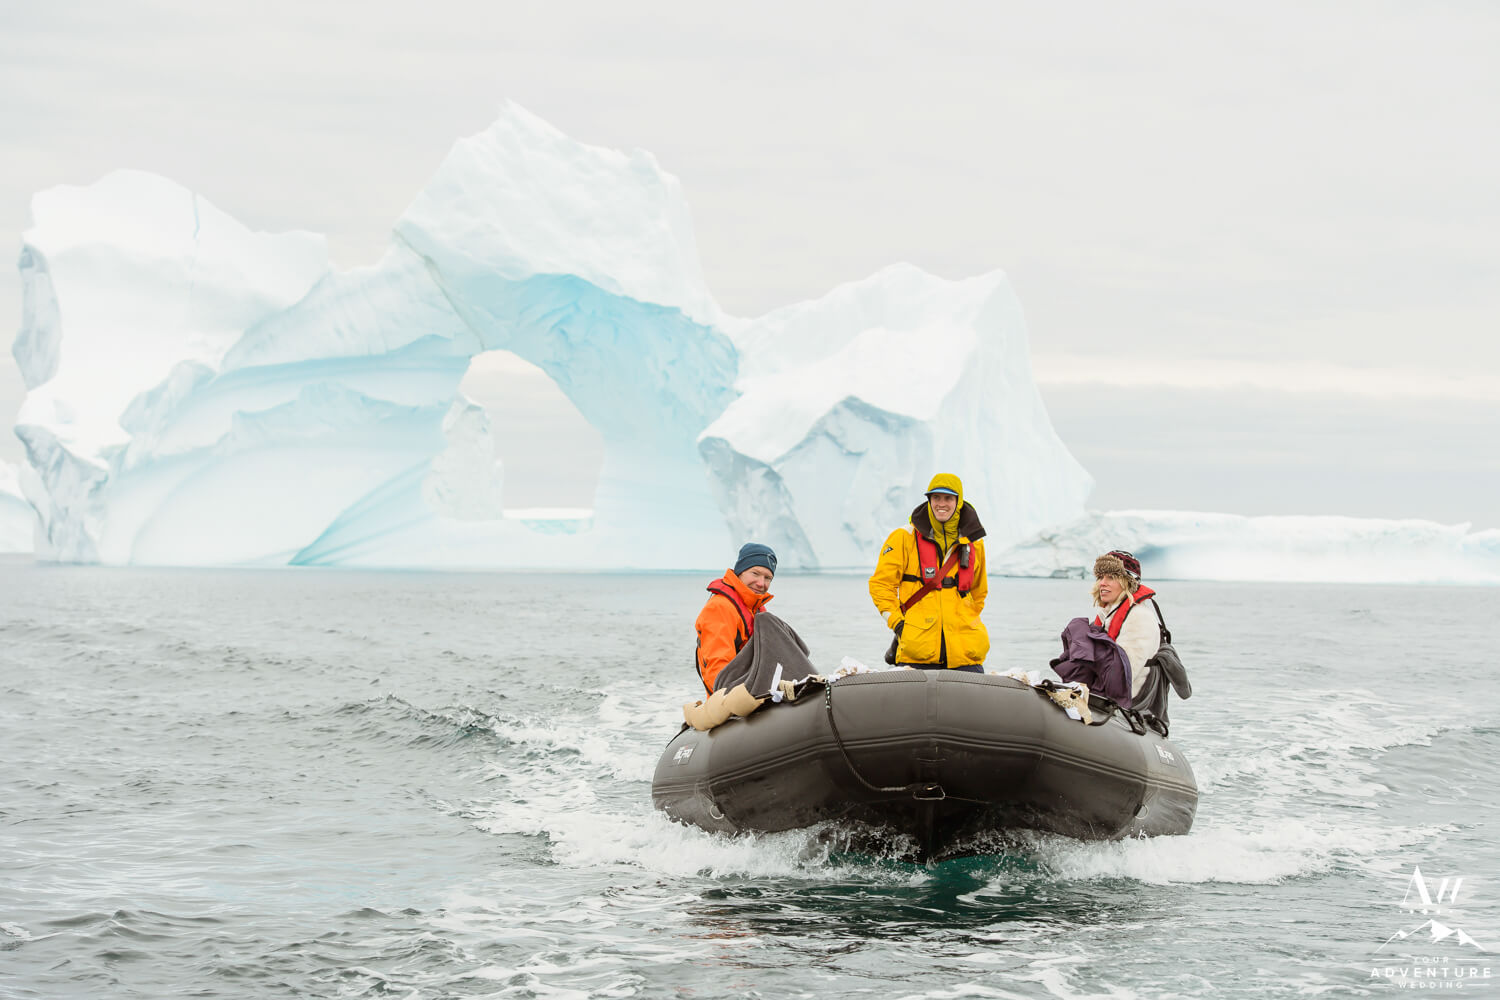 Antarctica Elopement Expedition Photo with Icebergs